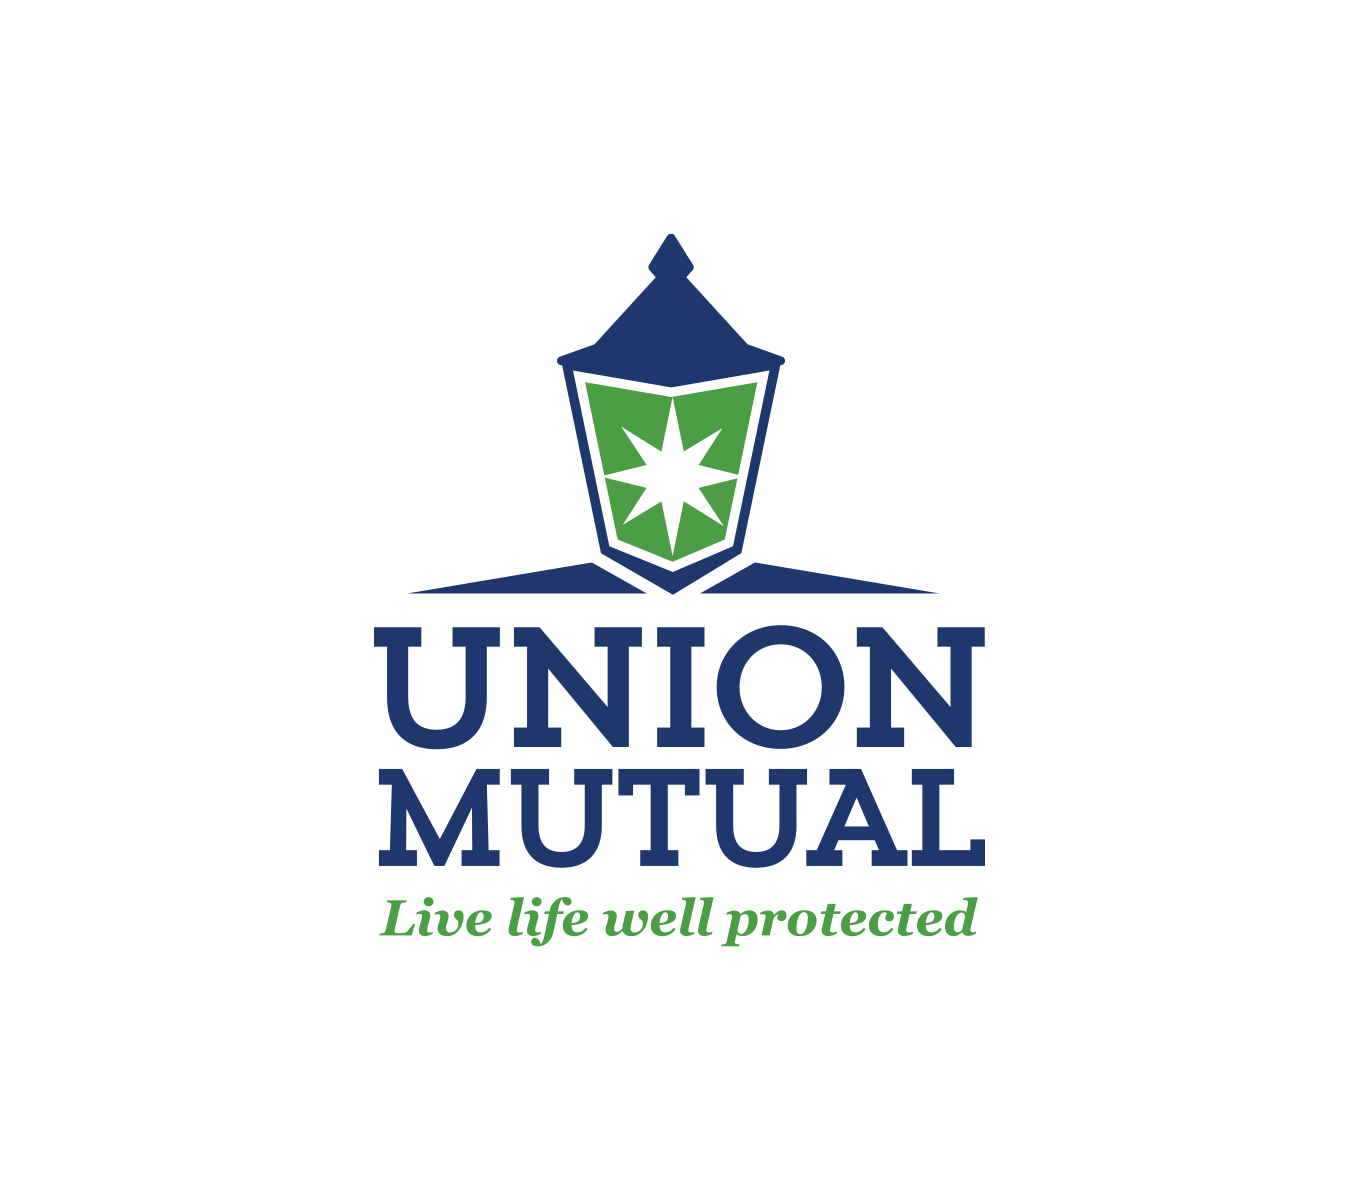 Union Mutual Customer Logo